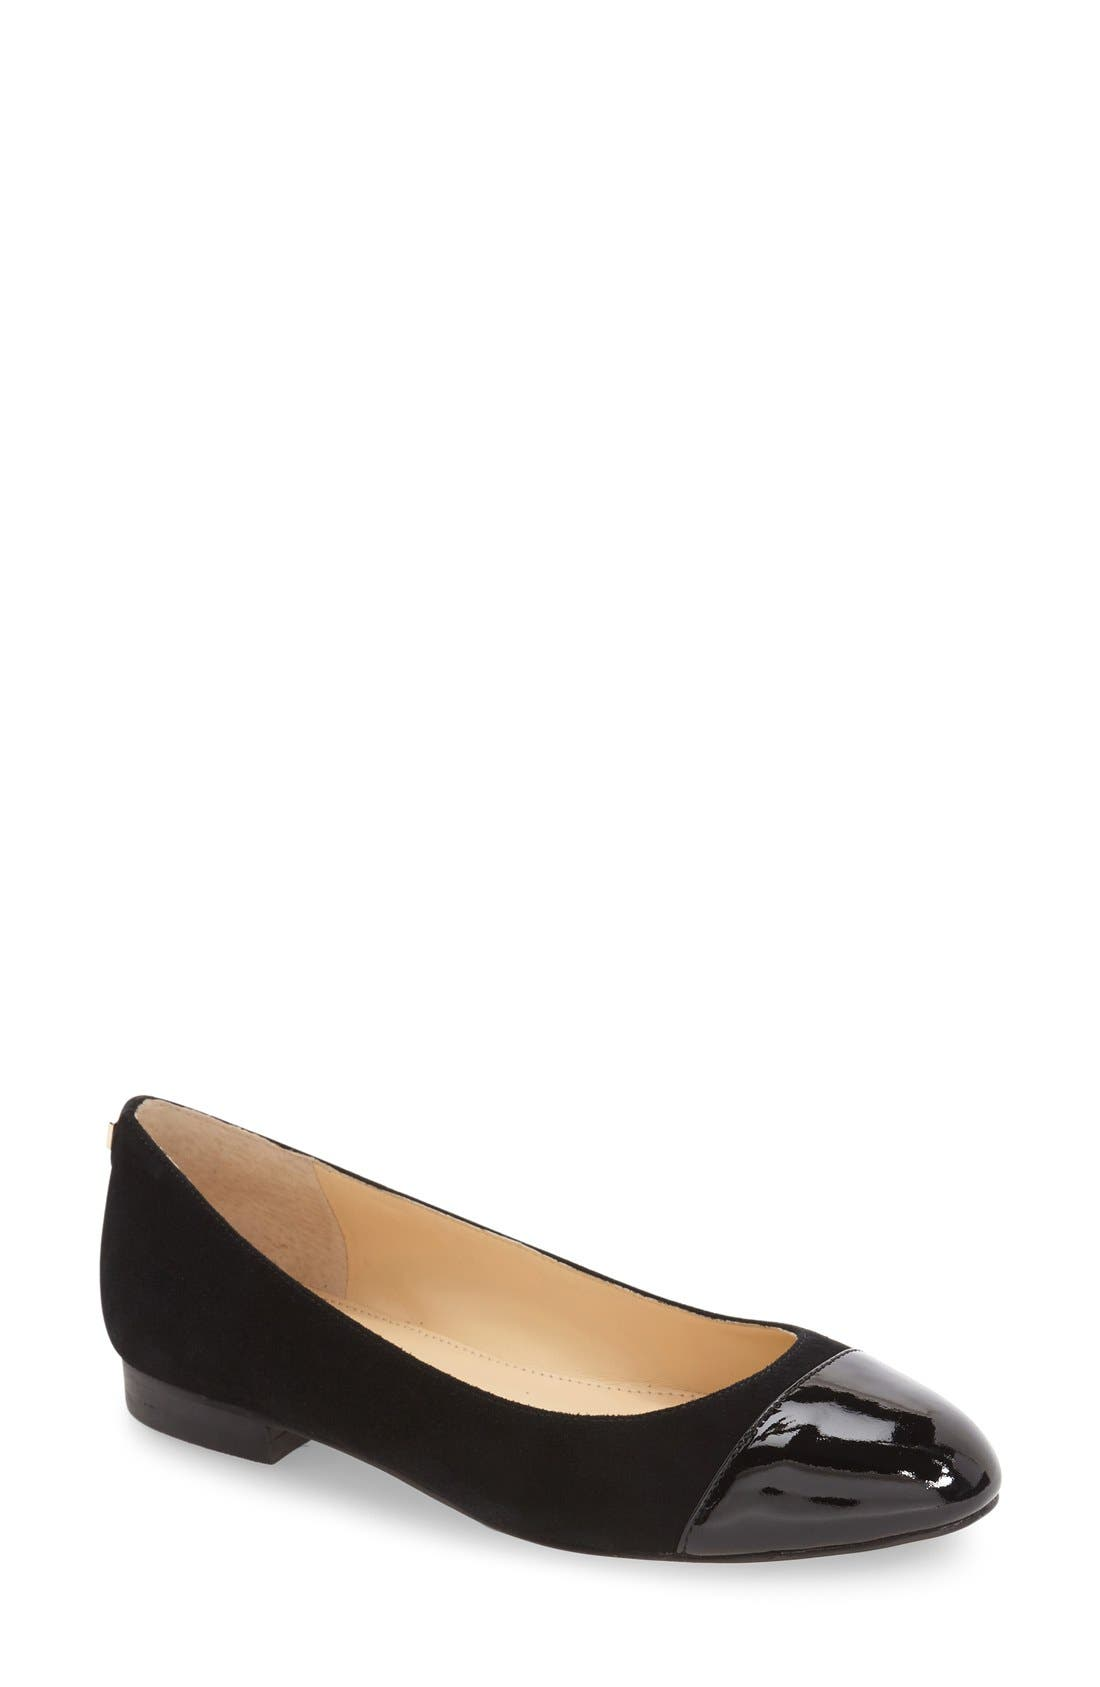 IVANKA TRUMP, 'Jocelyn' Cap Toe Flat, Main thumbnail 1, color, 001